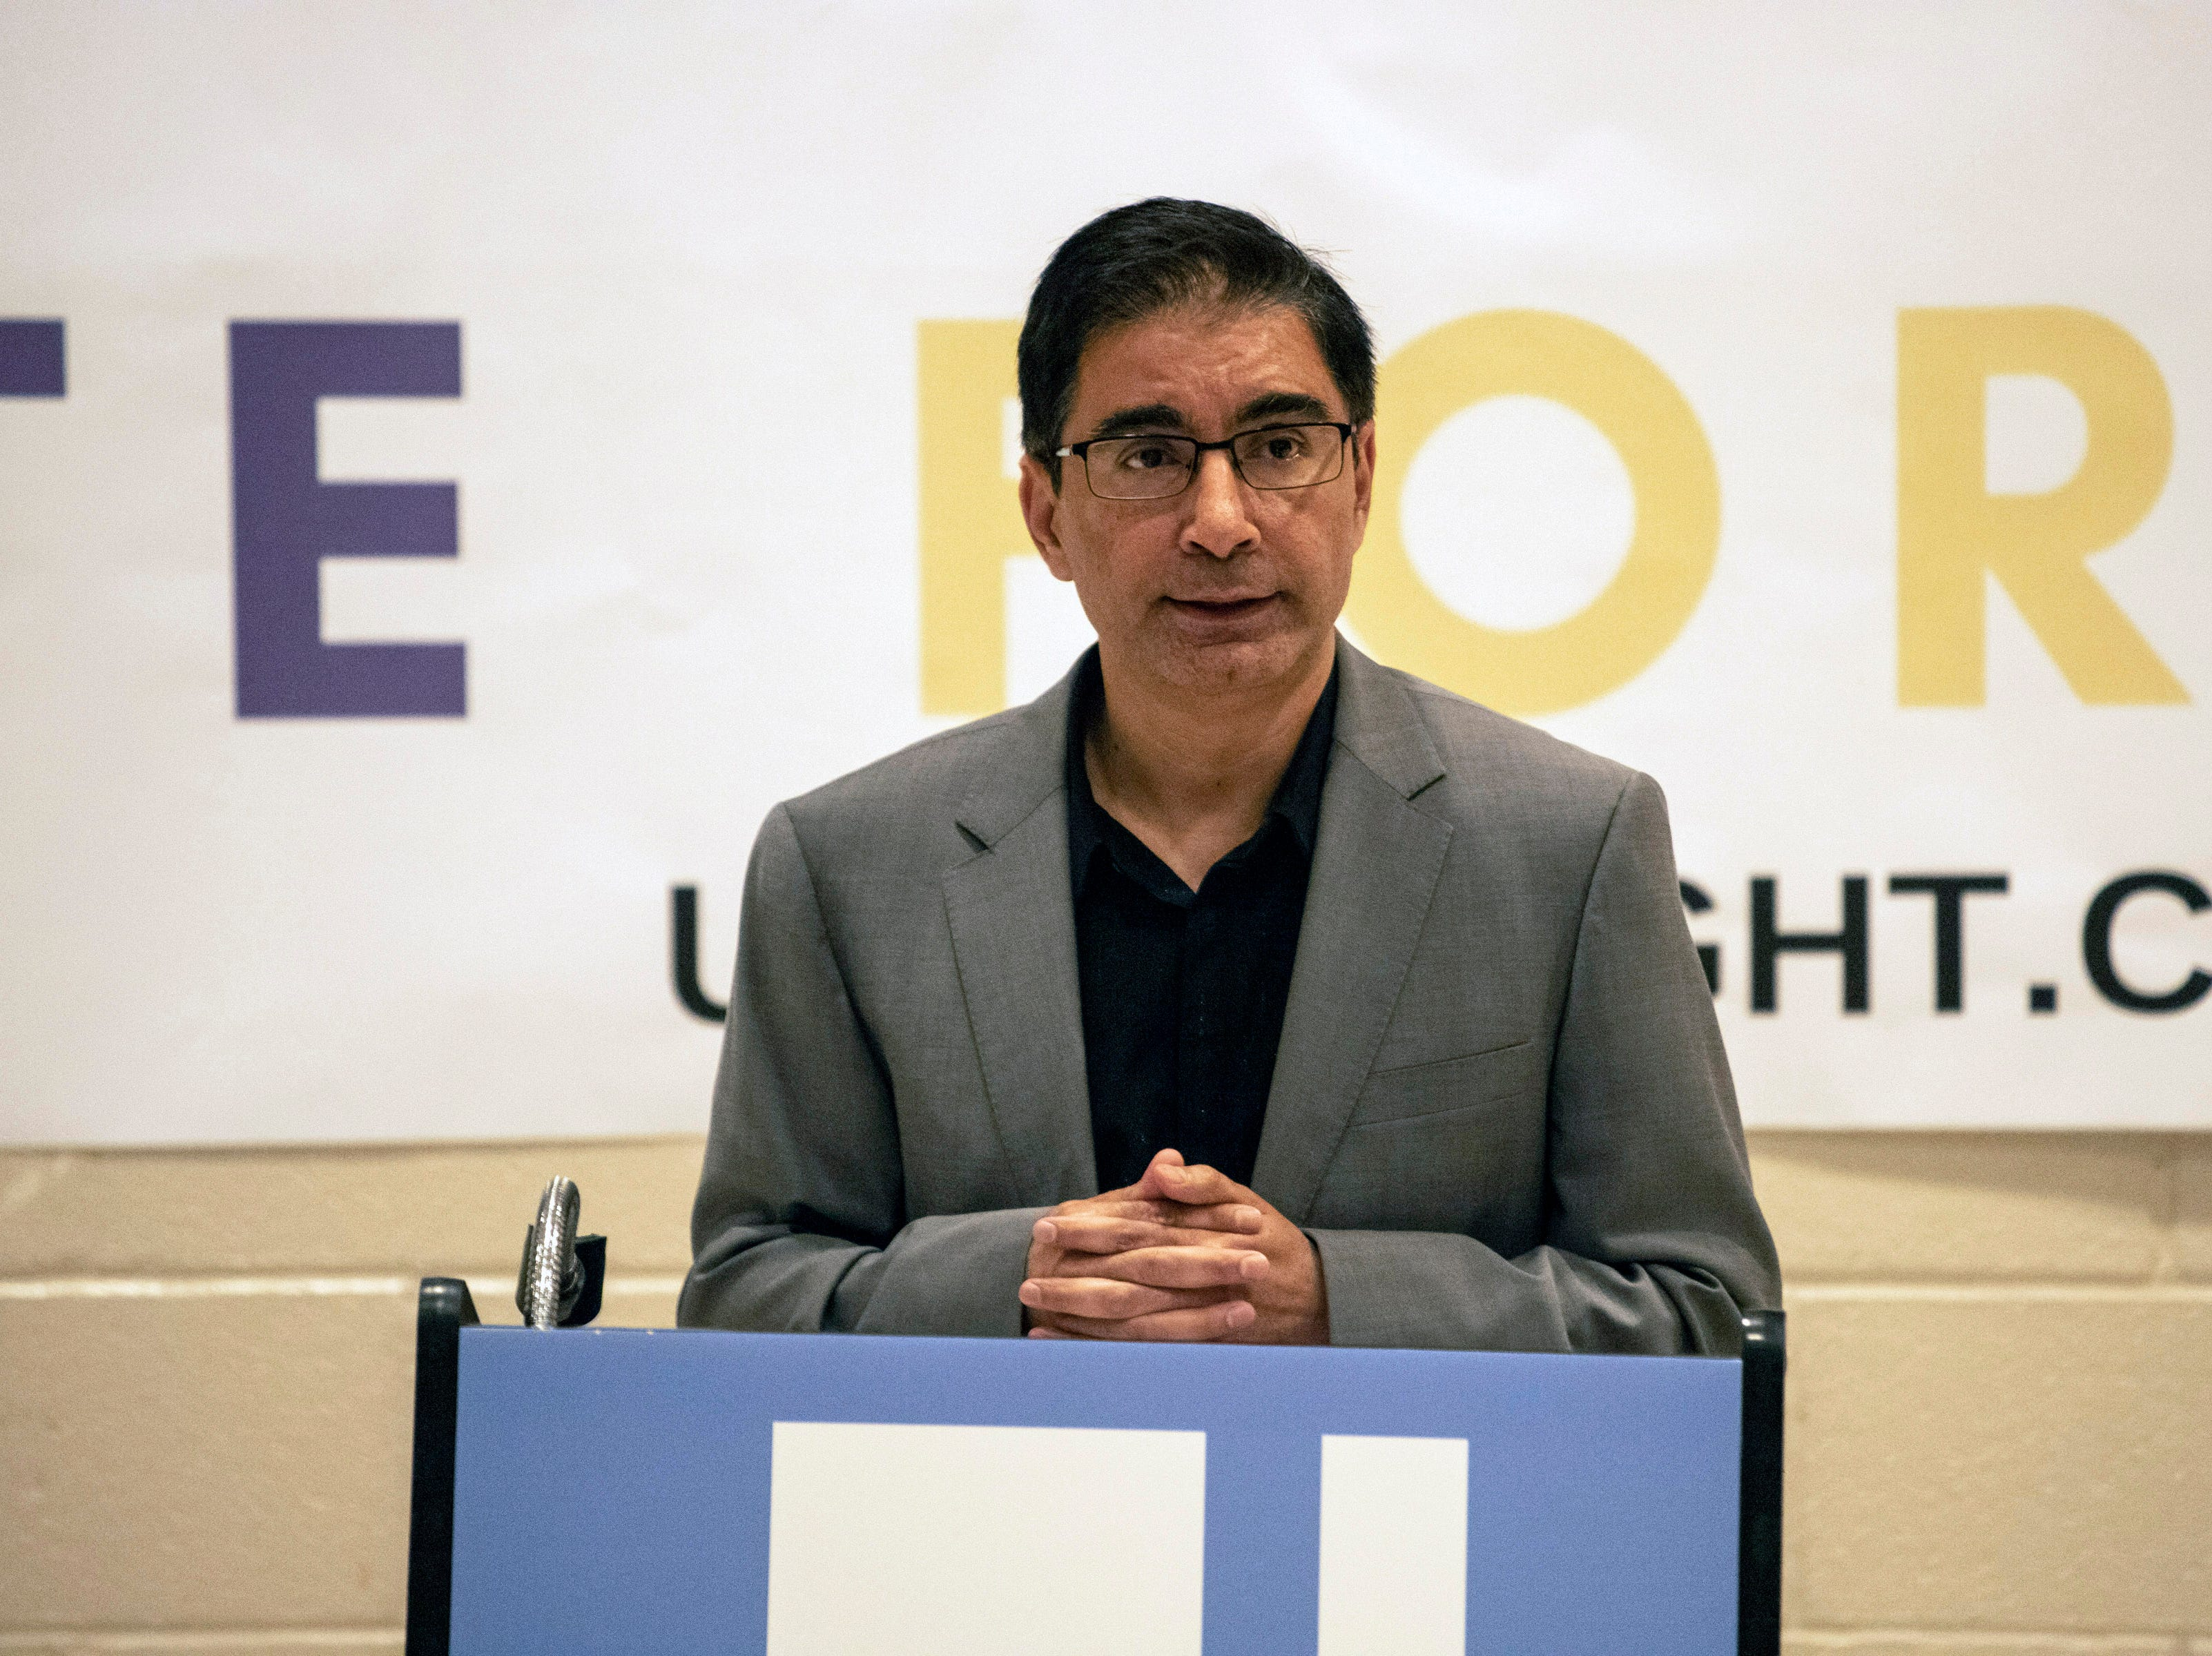 Dr. Muhammad Babar, president of the Muslim Americans for Compassion, was one of the featured speakers at a Unite For Light service at the Jewish Community Center on Tuesday night. April 30, 2019